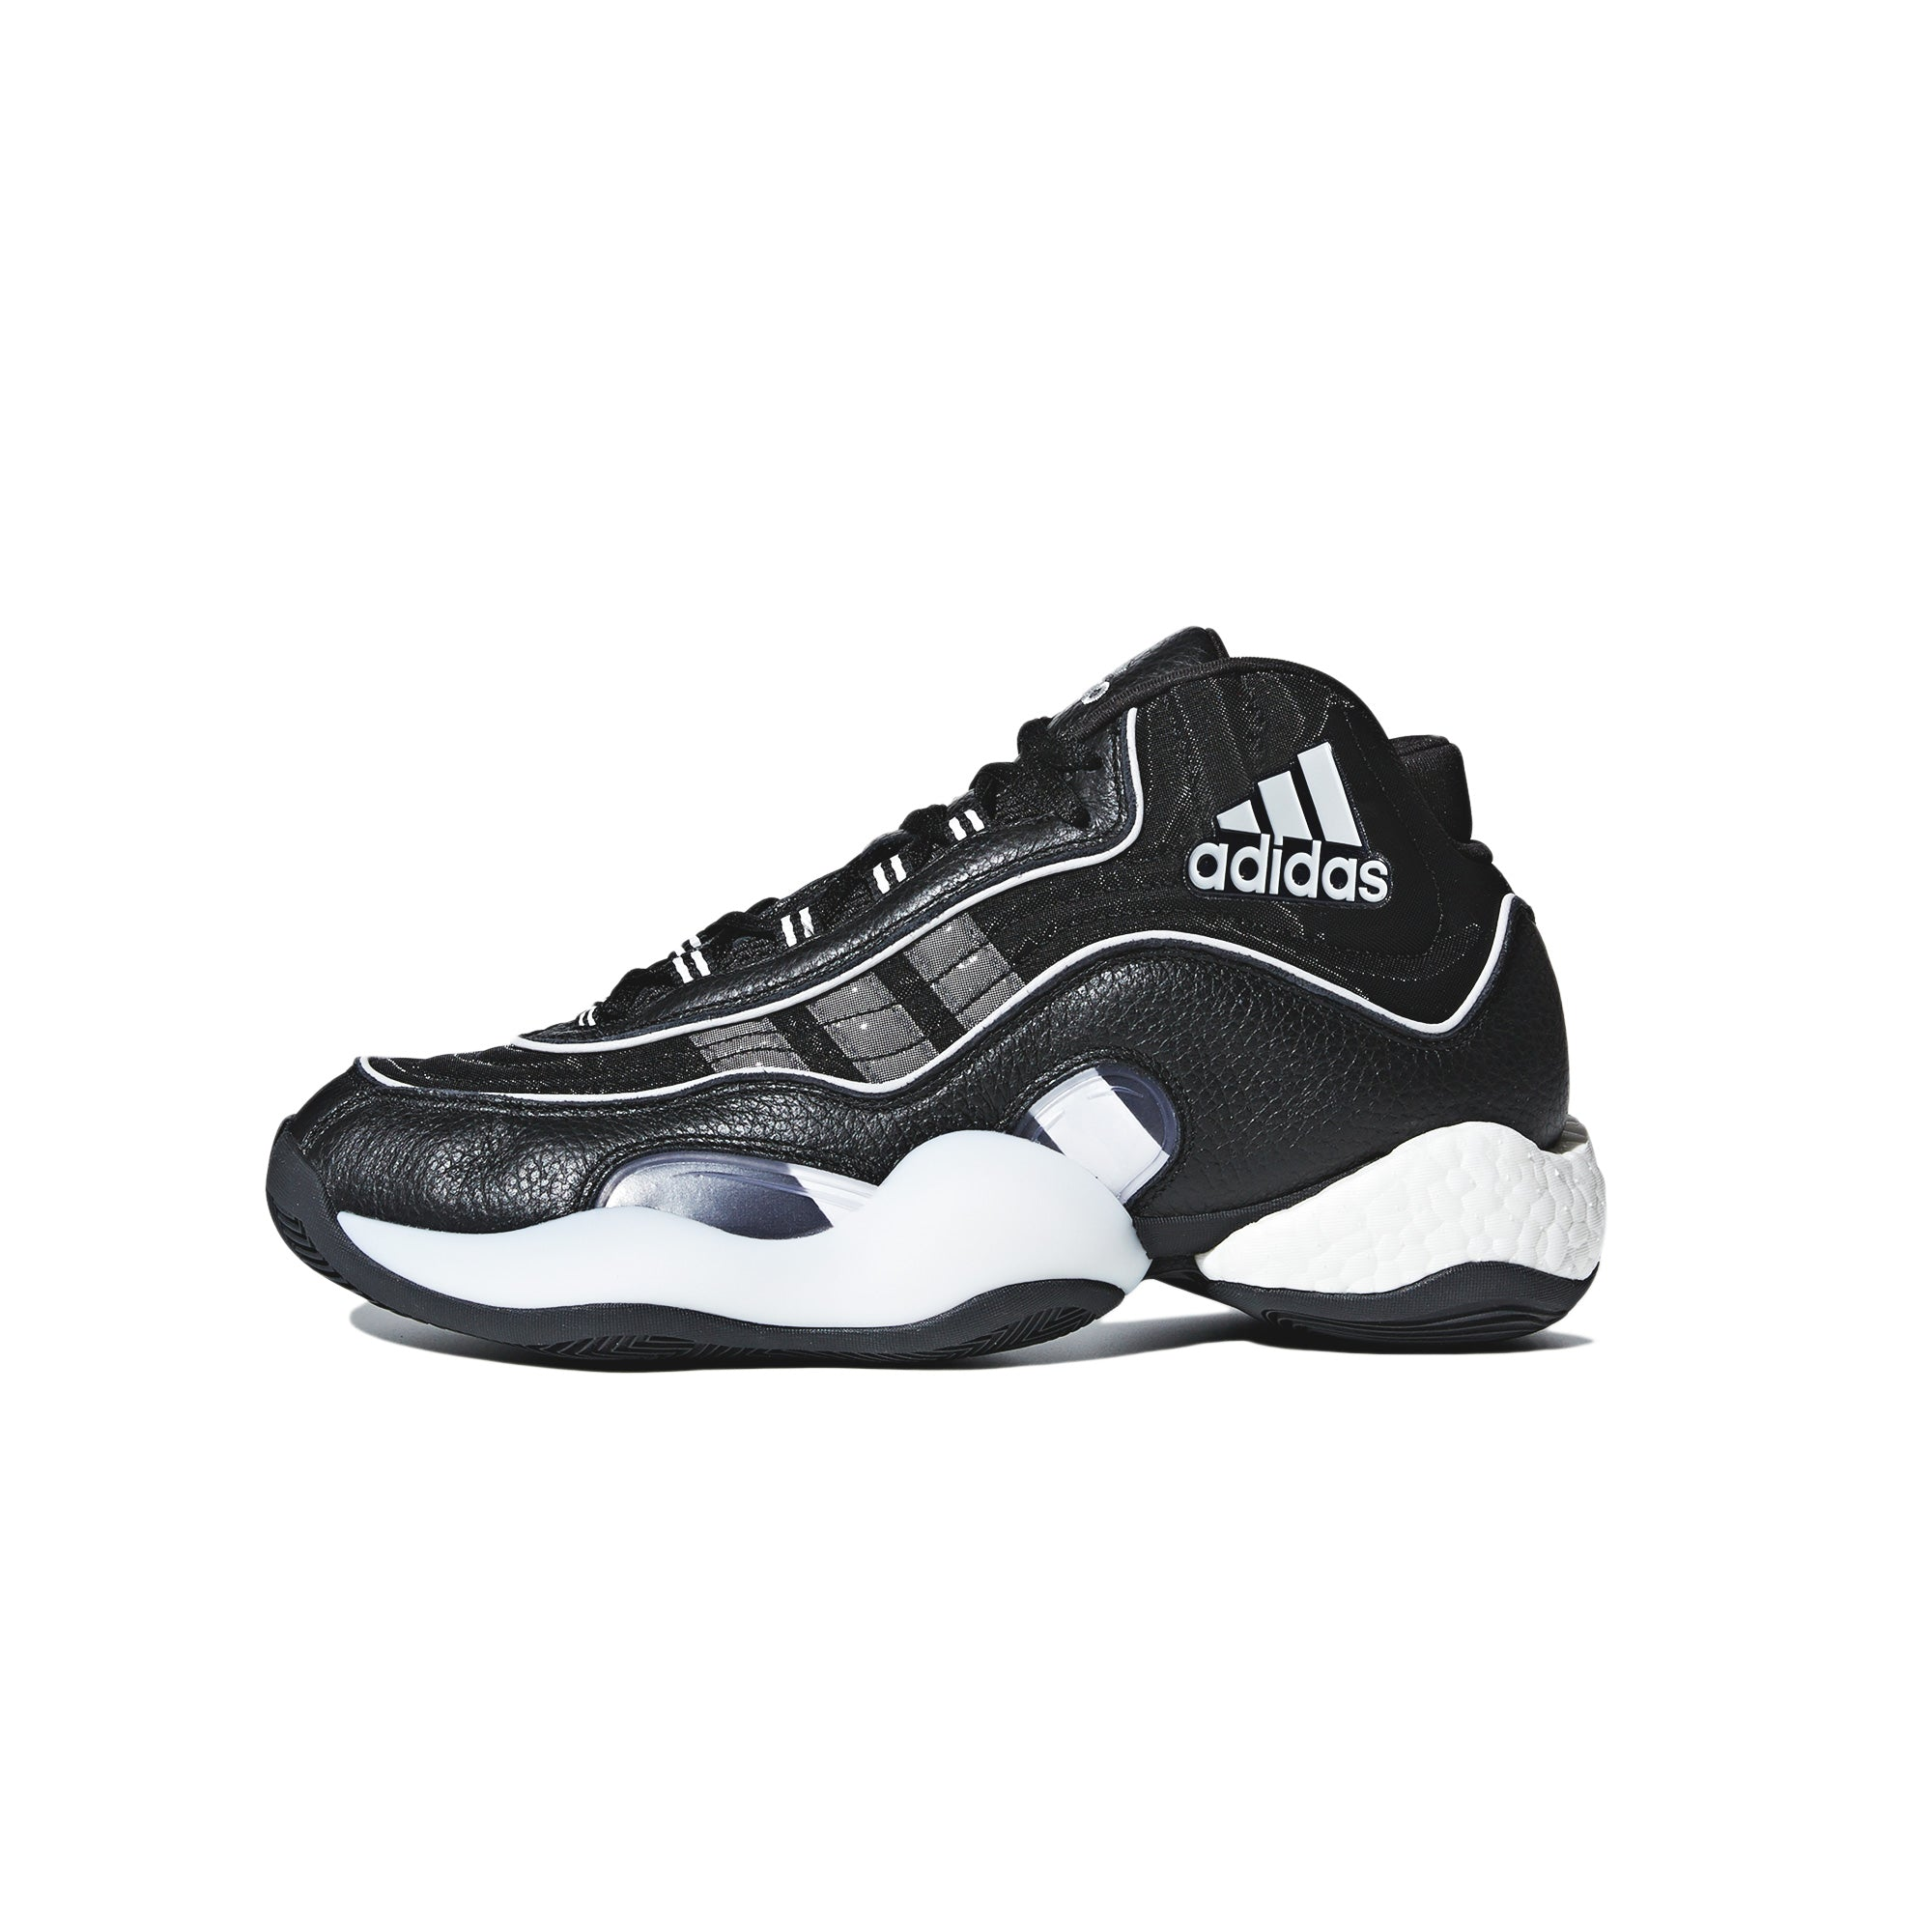 size 40 a4b88 ccb70 Adidas Never Made 98 x Crazy BYW G26807